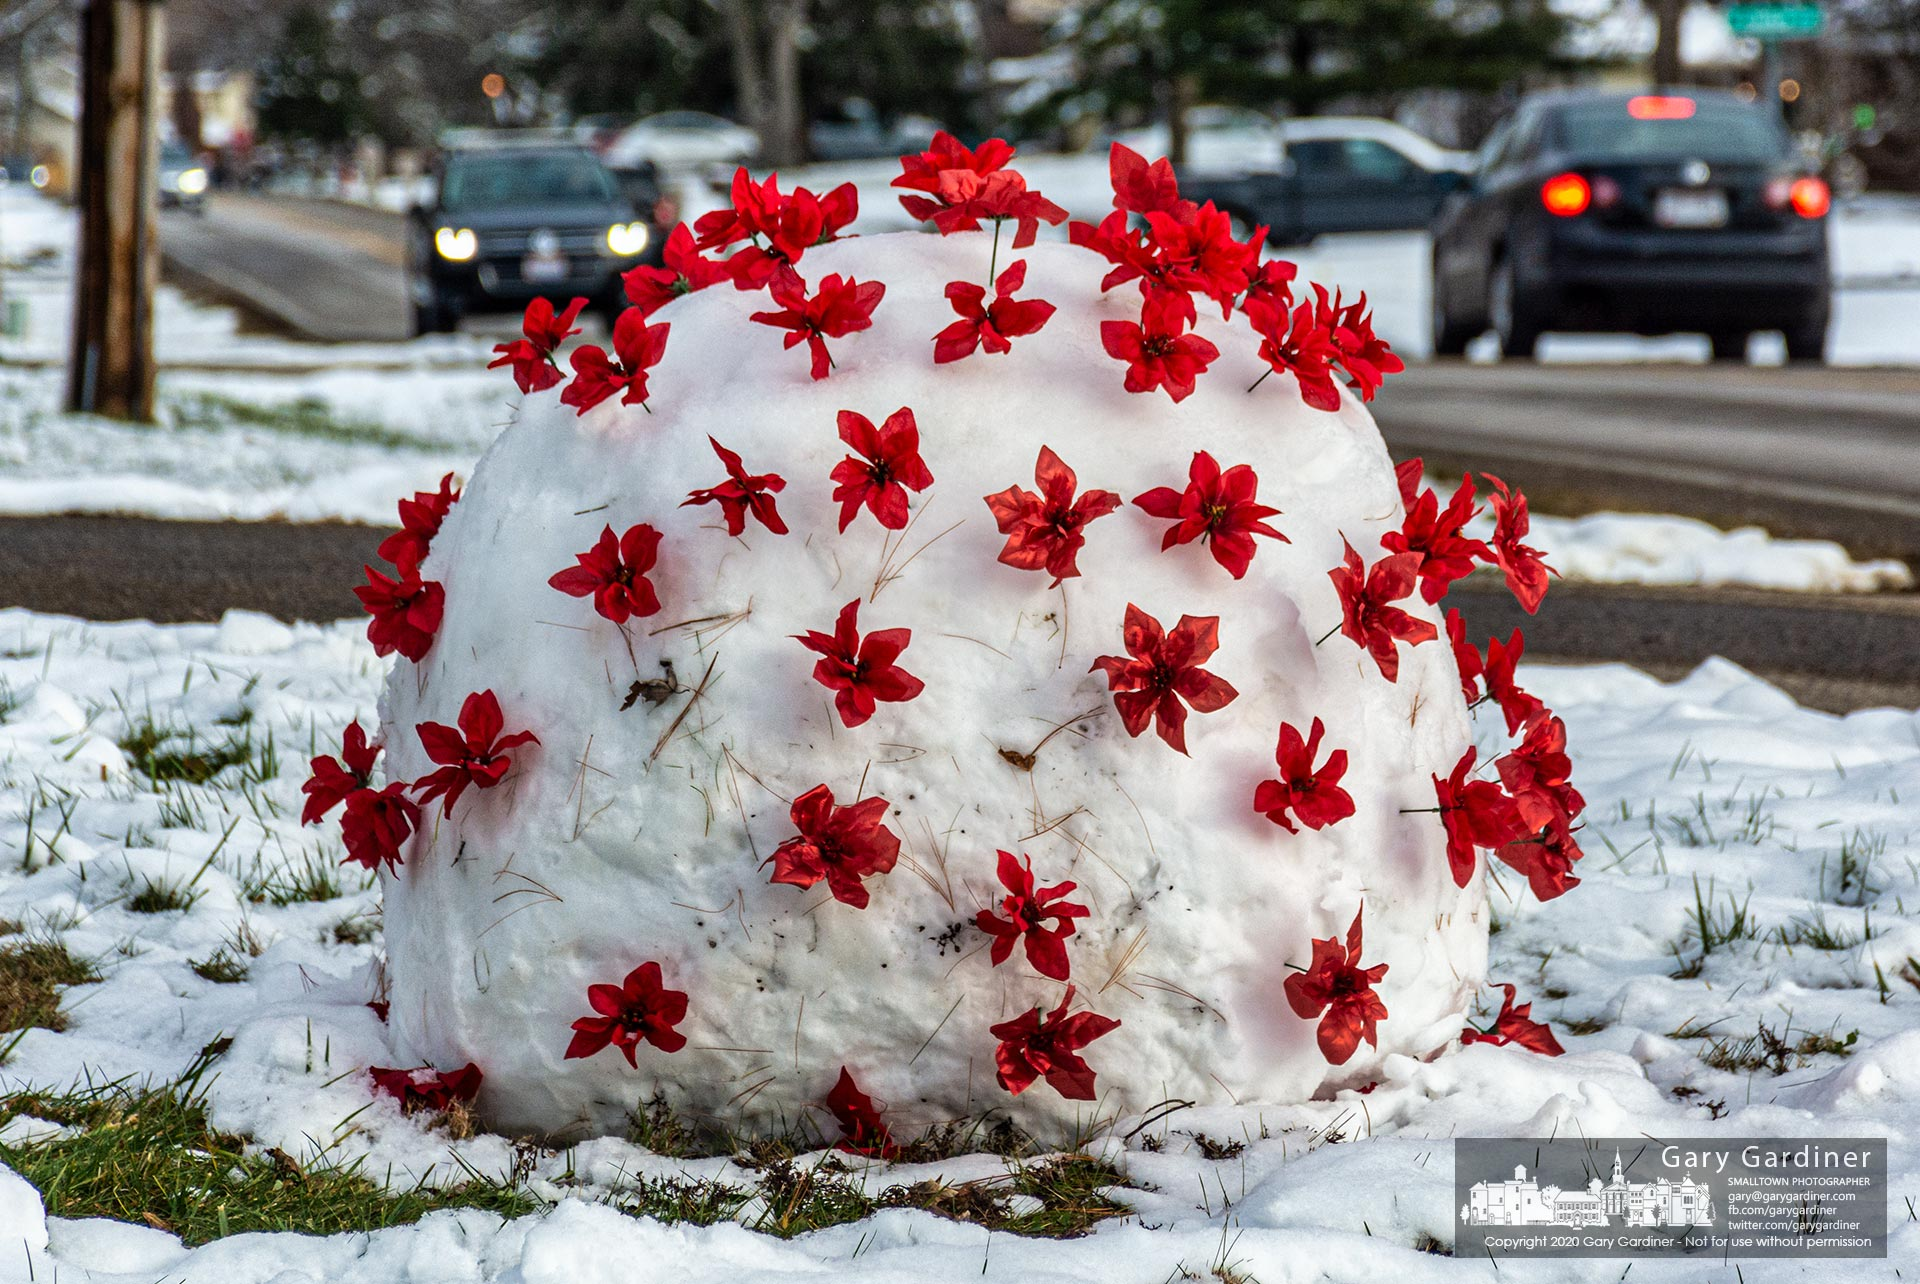 An oversized snowball on East College is decorated as the coronavirus. My Final Photo for Dec. 18, 2020.